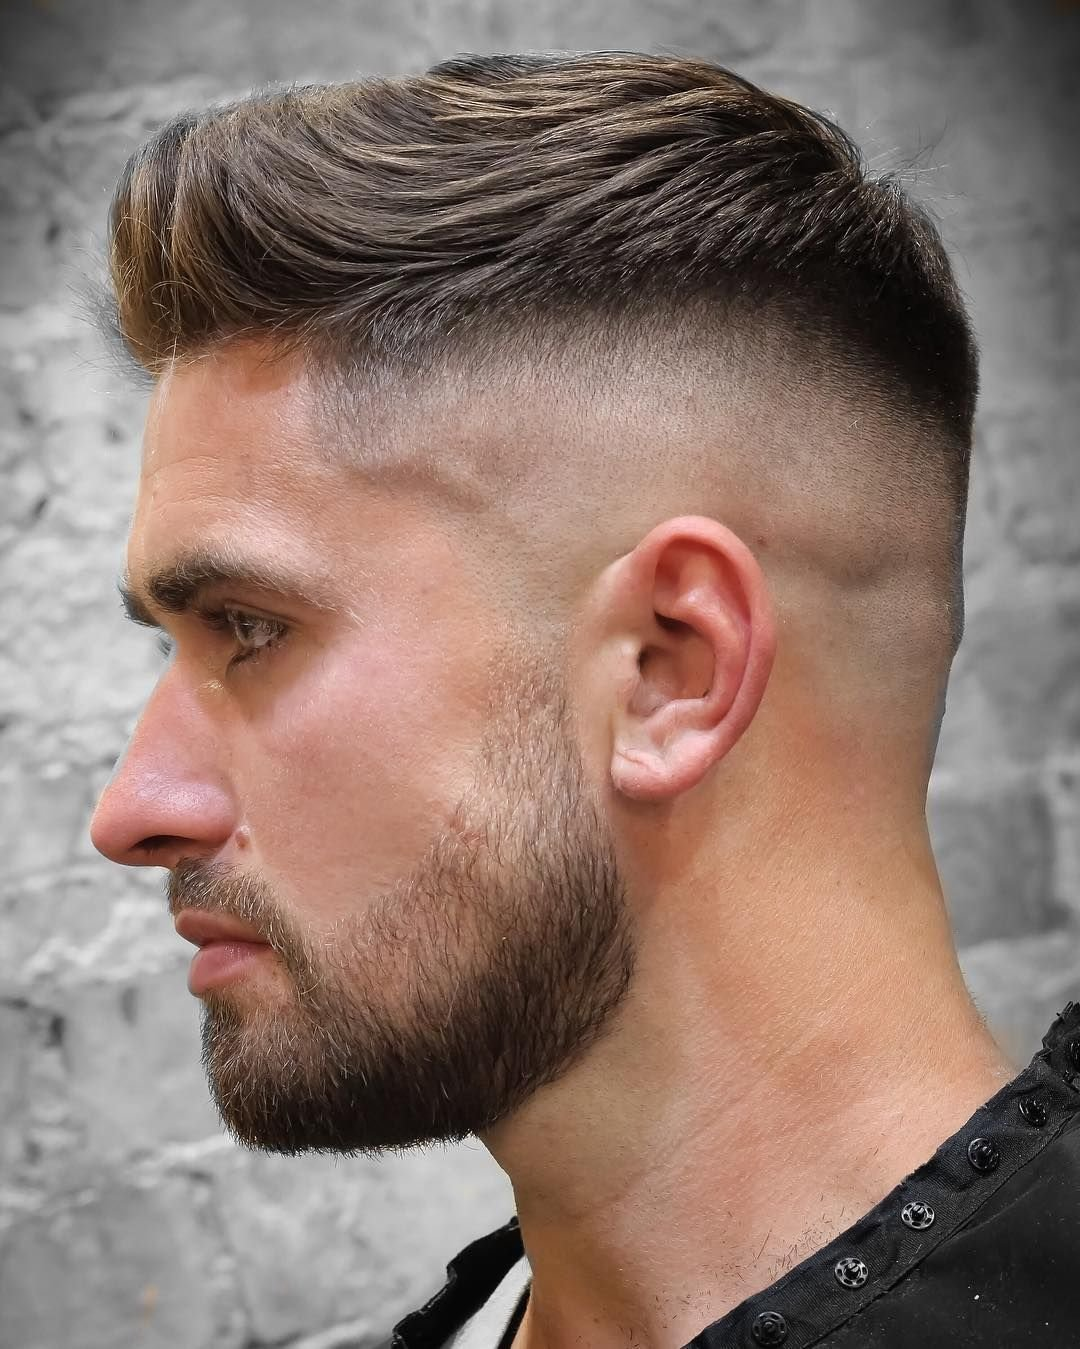 The Best Mens Hairstyles 2019 Hair Styles In 2019 Quiff Haircut Pictures